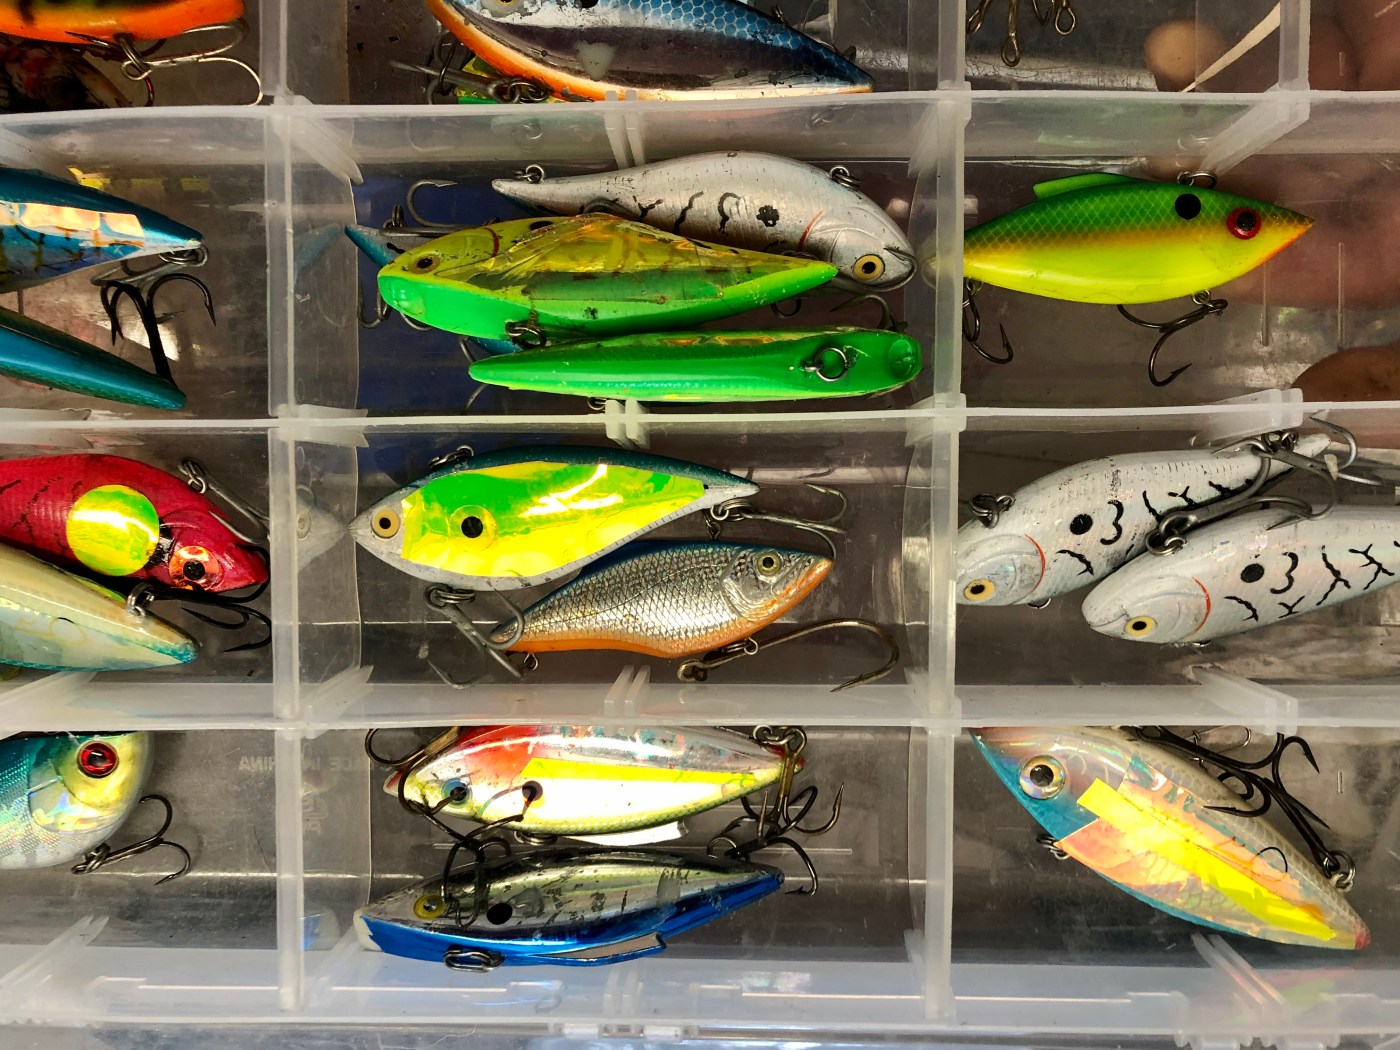 How to choose Lipless crankbaits for bass